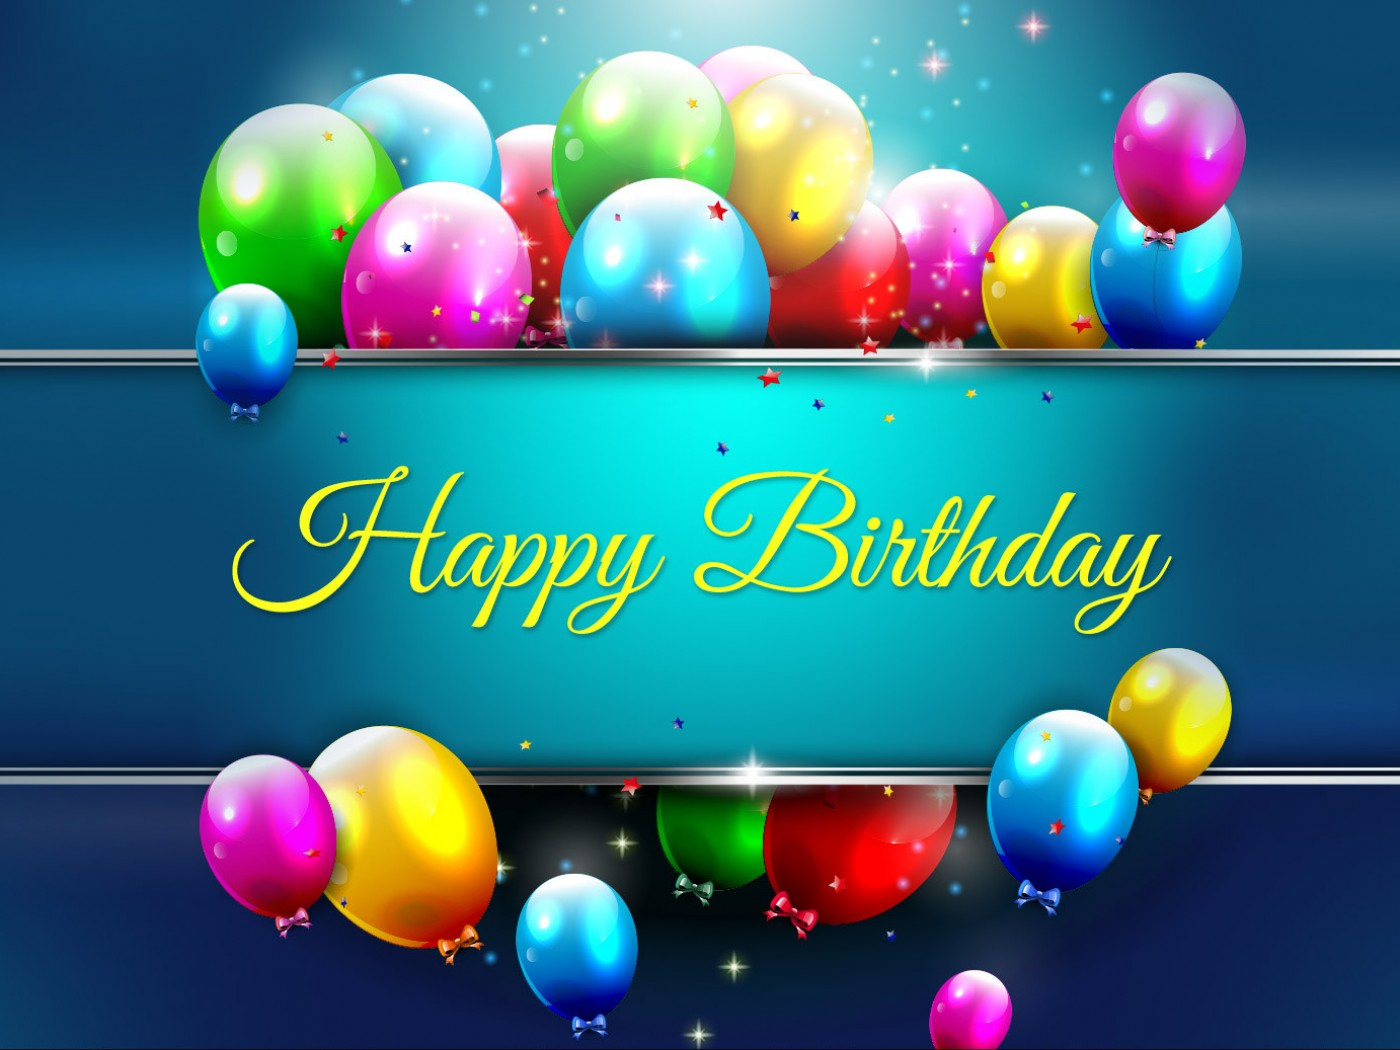 Happy Bday Images Wallpapers (59 Wallpapers)